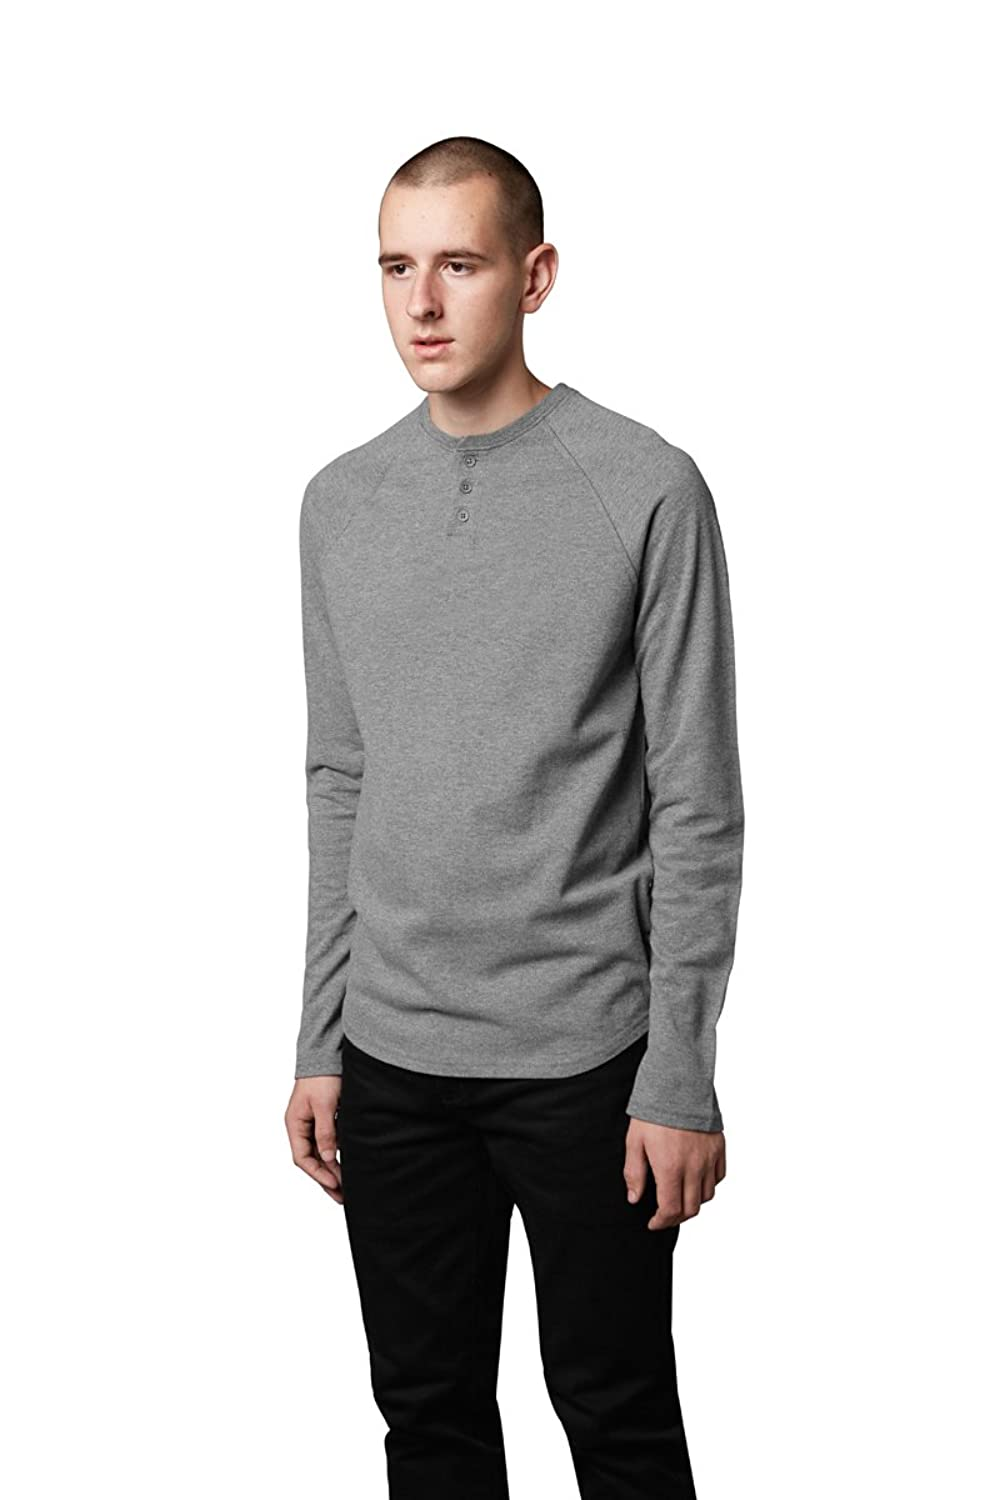 Altamont Mens Portman Henley Long-Sleeve Shirt low-cost